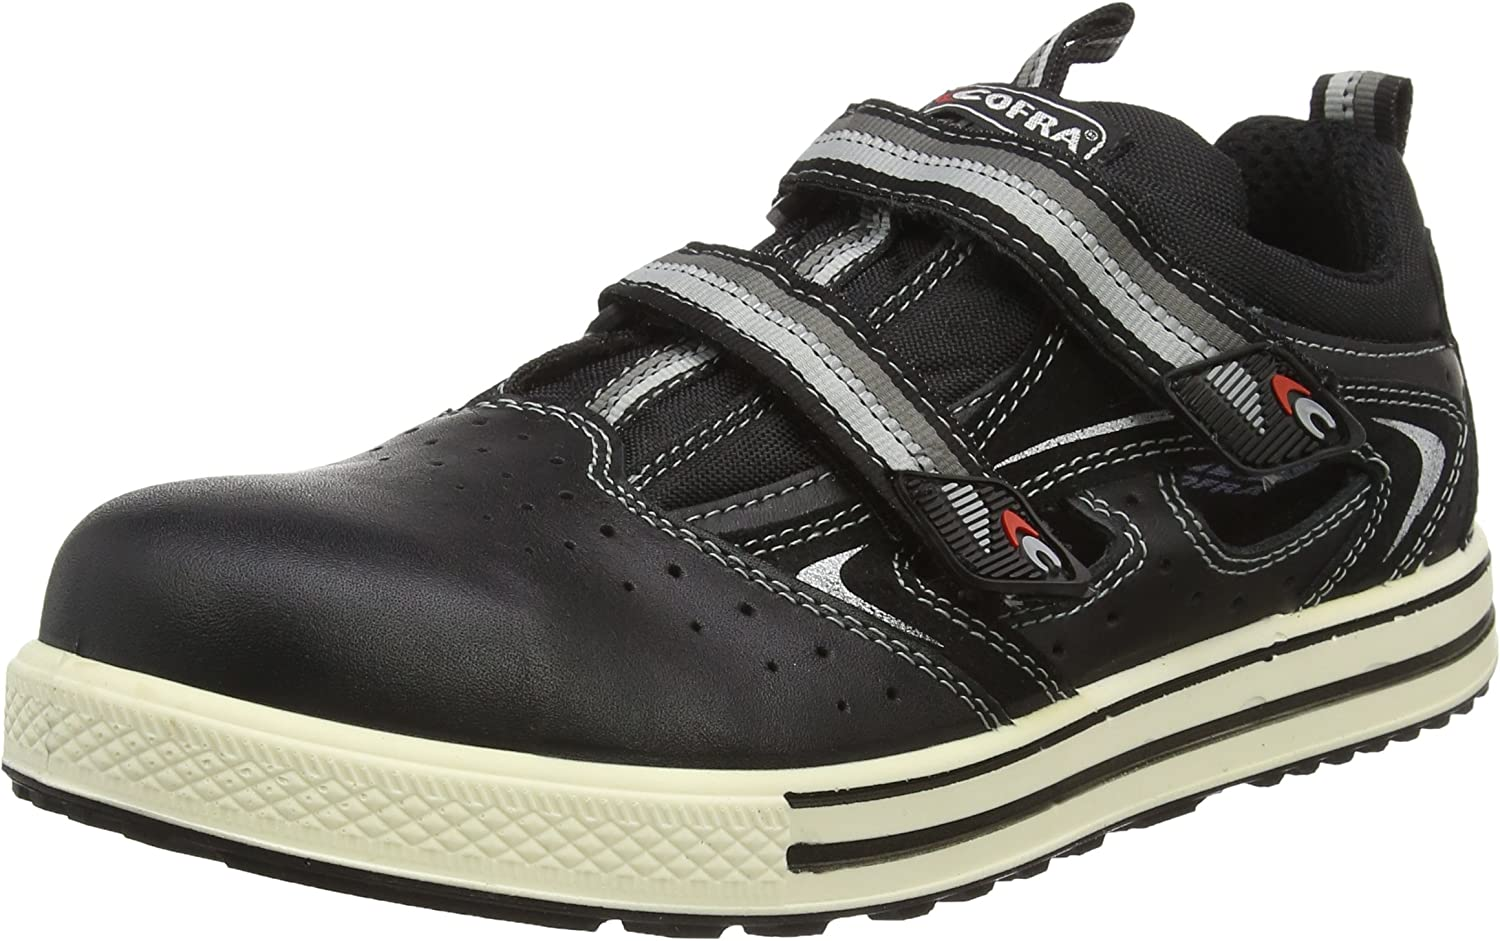 Jam COFRA- Safety shoes S1P